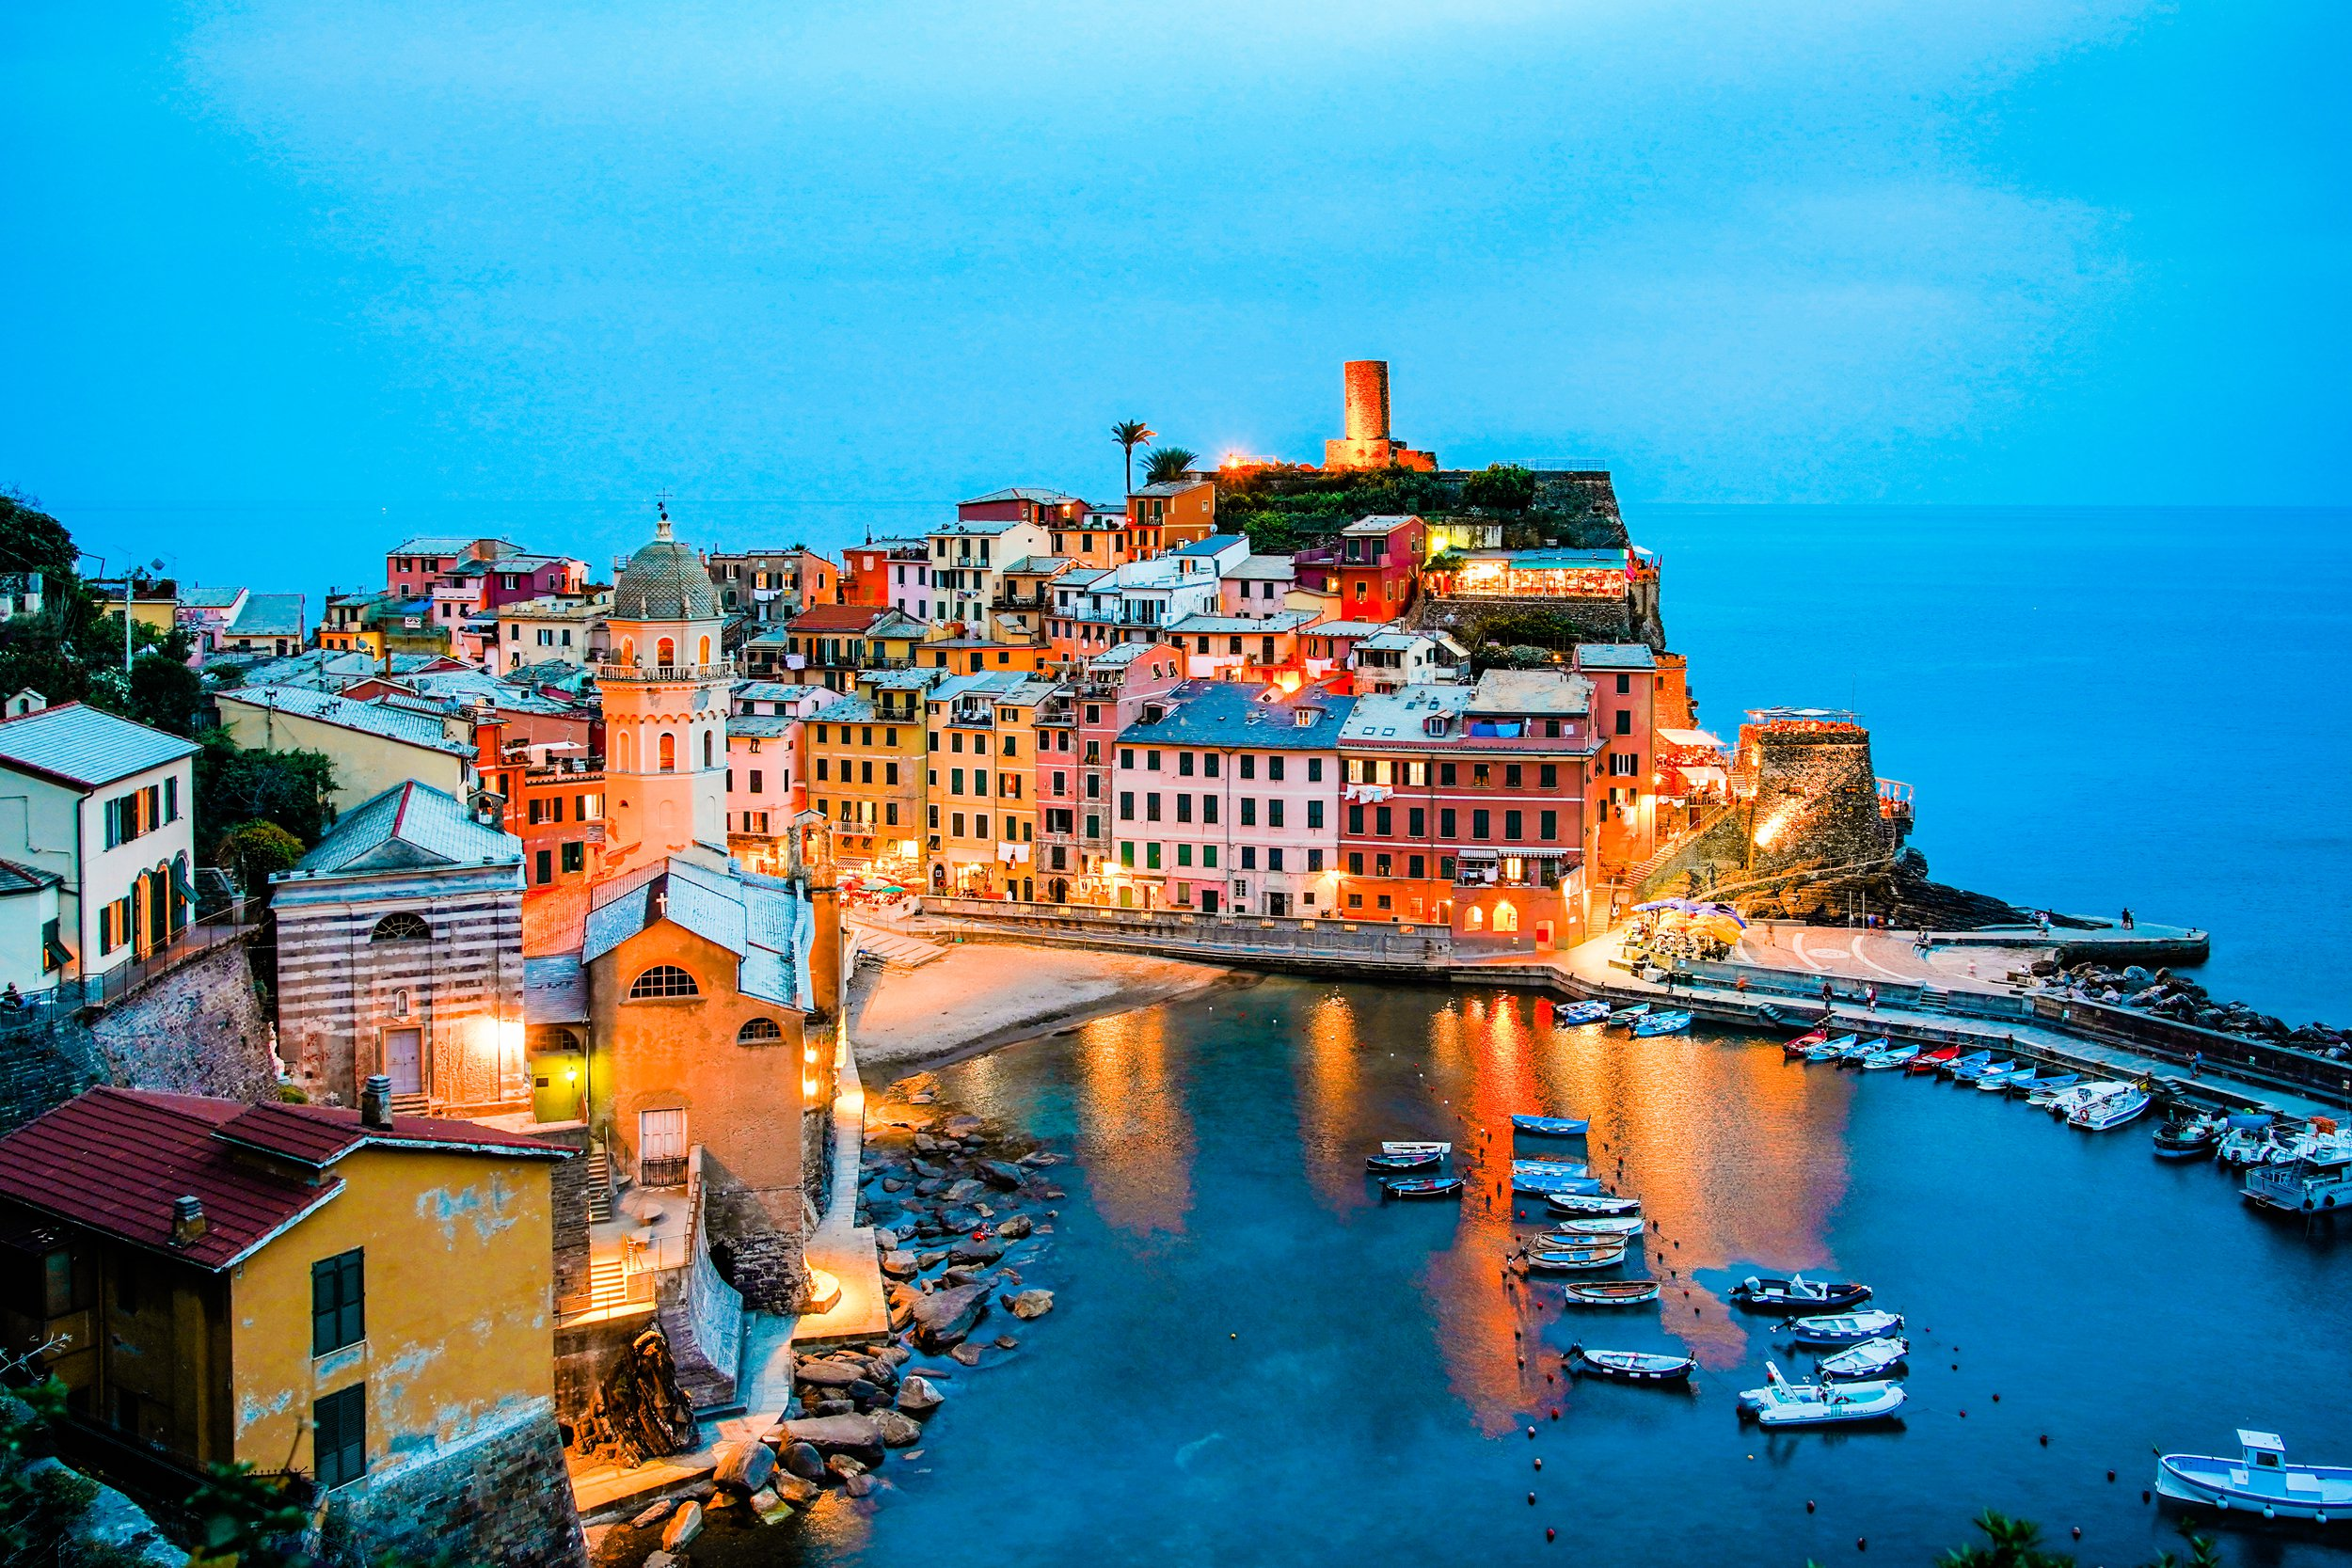 Vernazza, Italy. June 2018. Shot on Sony A7III and Sony 24-70 f4 lens. Shot at 30mm. Shutter speed 1/3 sec. Aperture f/4. ISO 800.